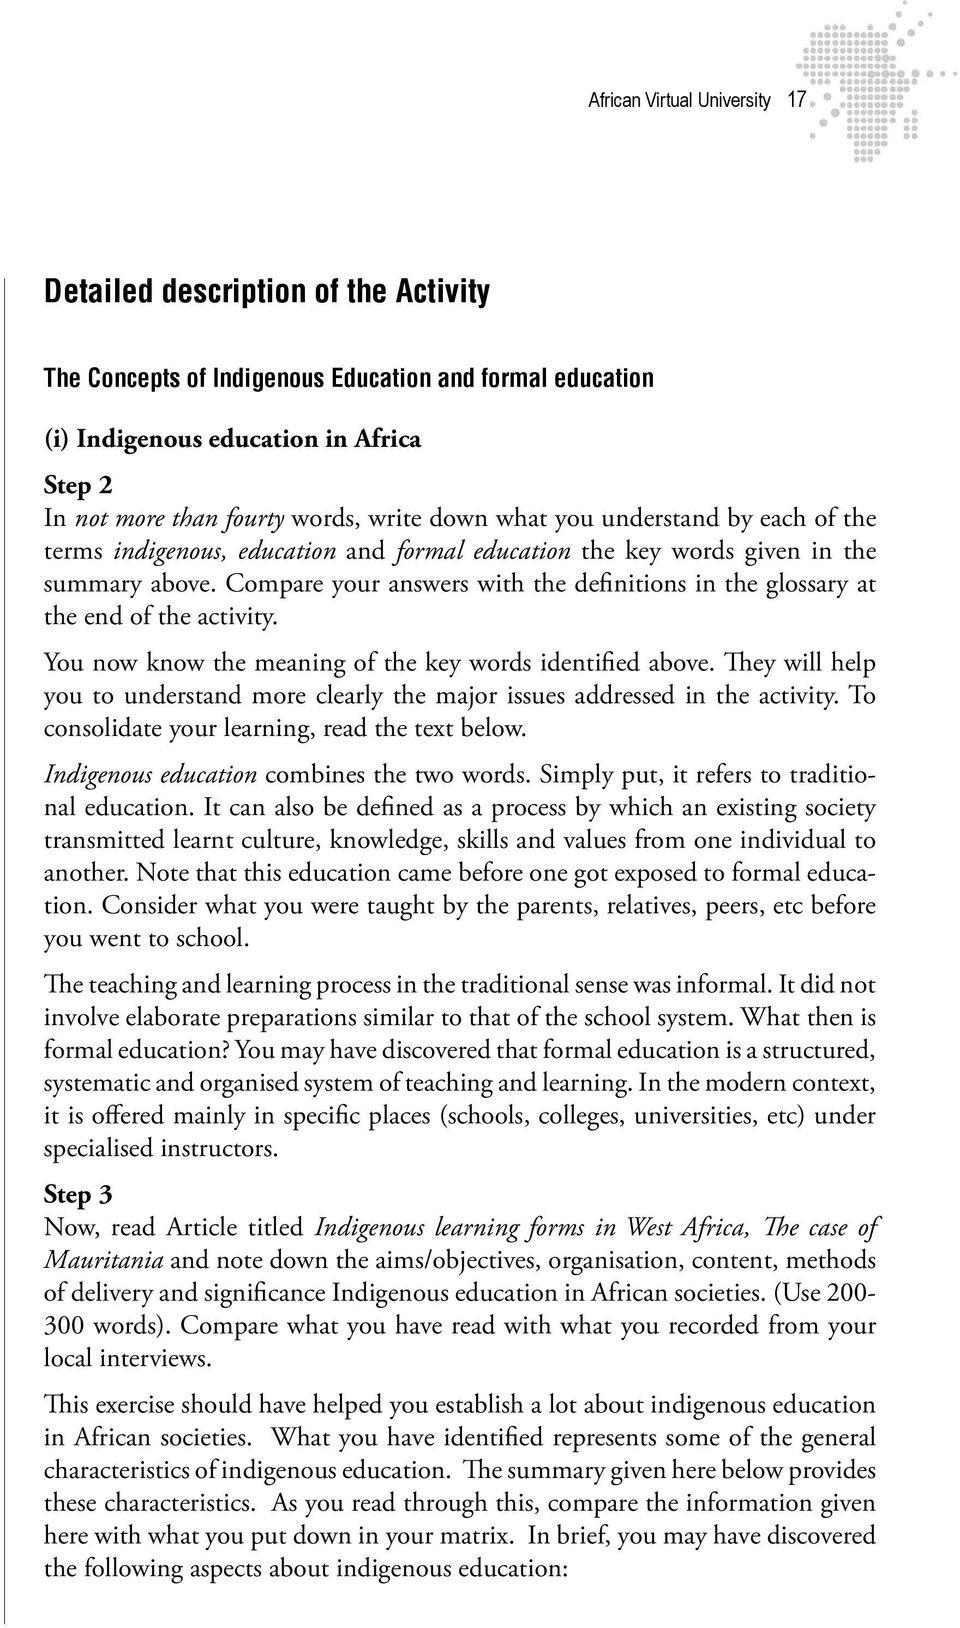 history of education prepared by ssemanda enosi african virtual compare your answers the definitions in the glossary at the end of the activity